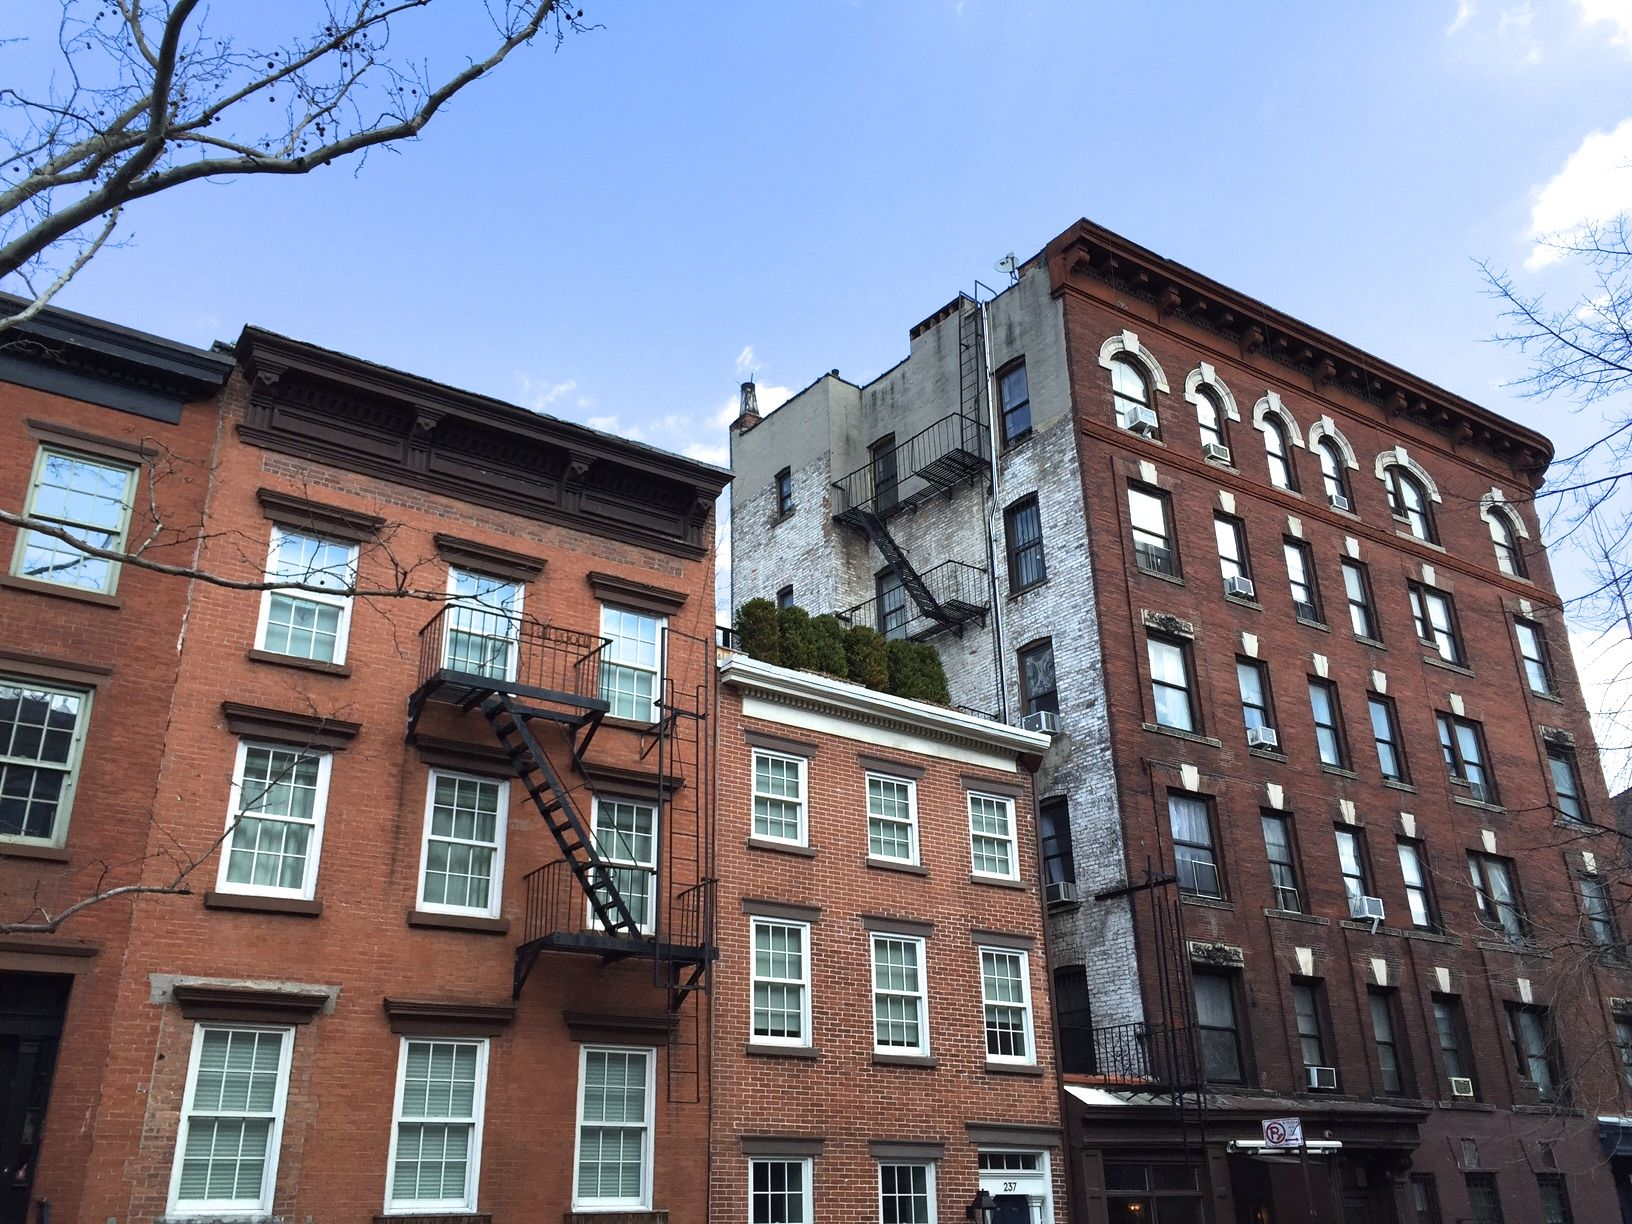 There seem to be a few open windows in the large building at the far right.